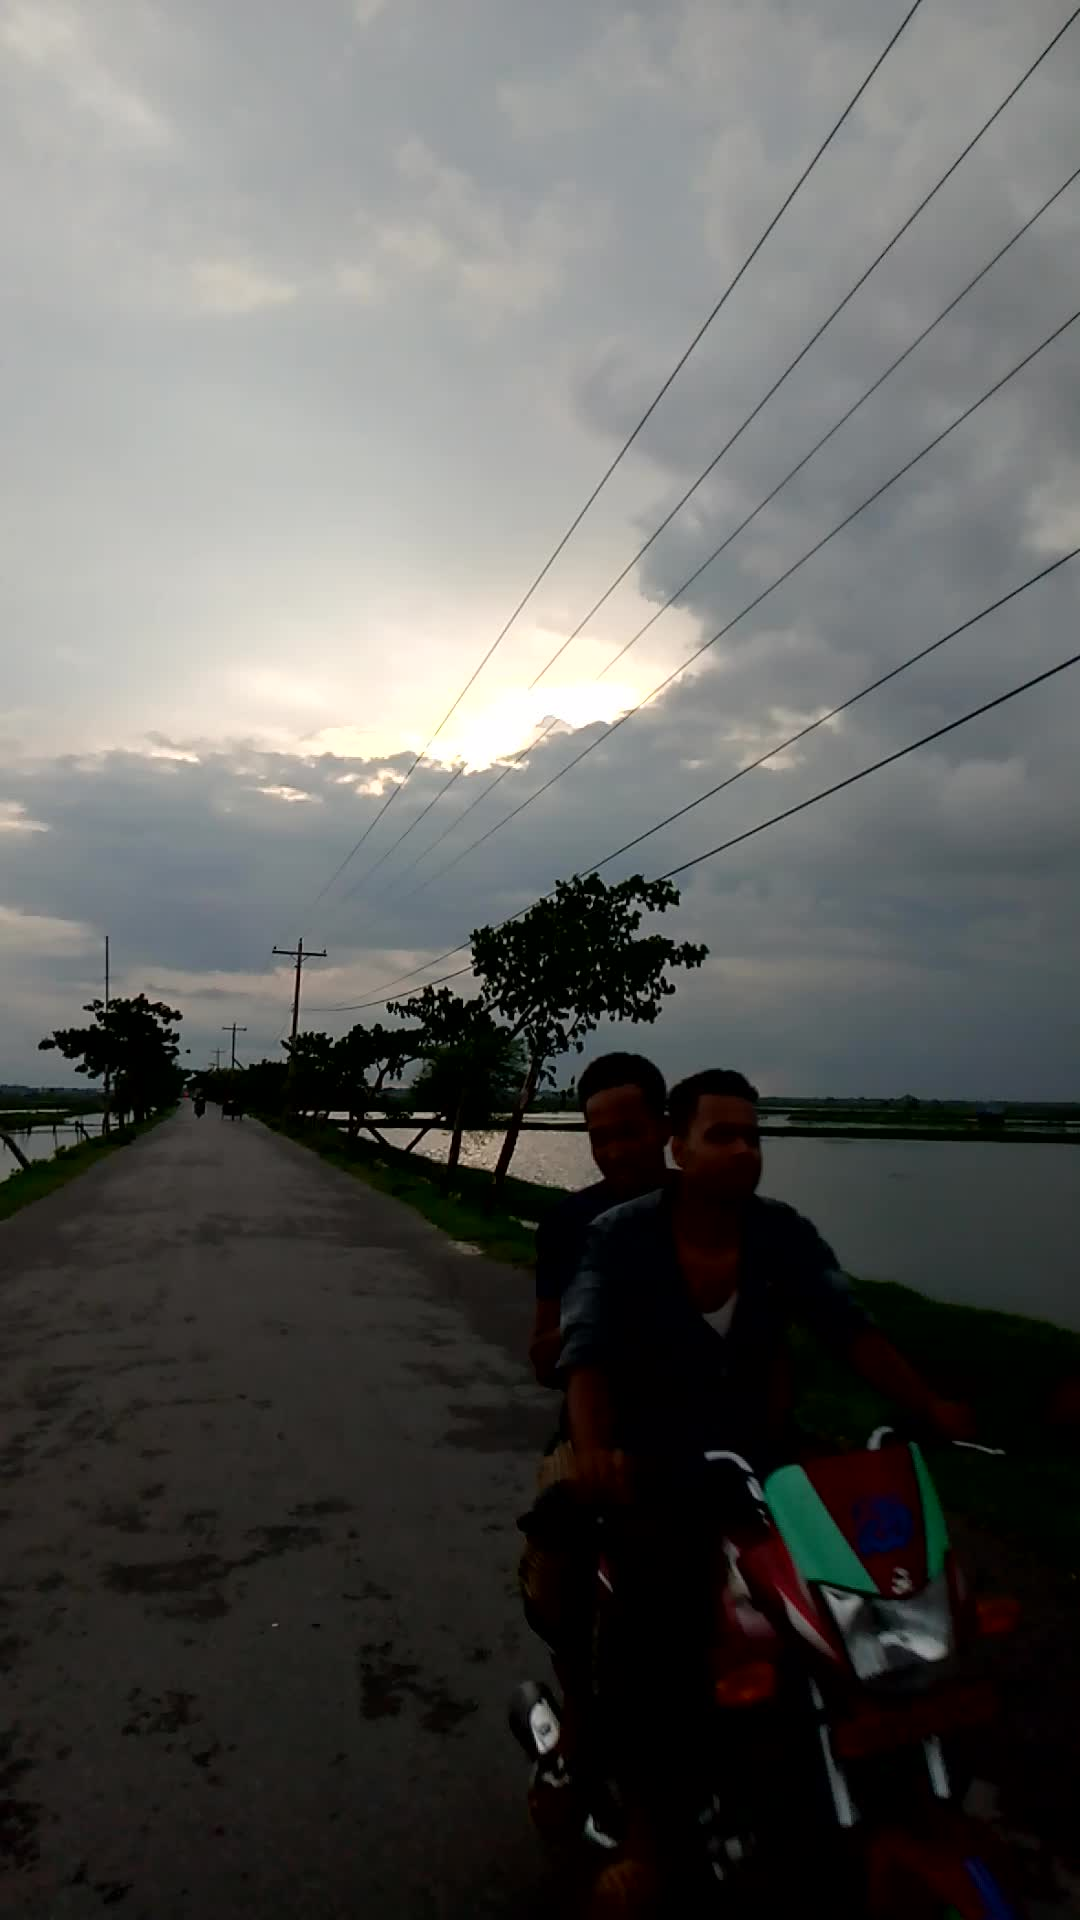 The beauty of the road at the rural level